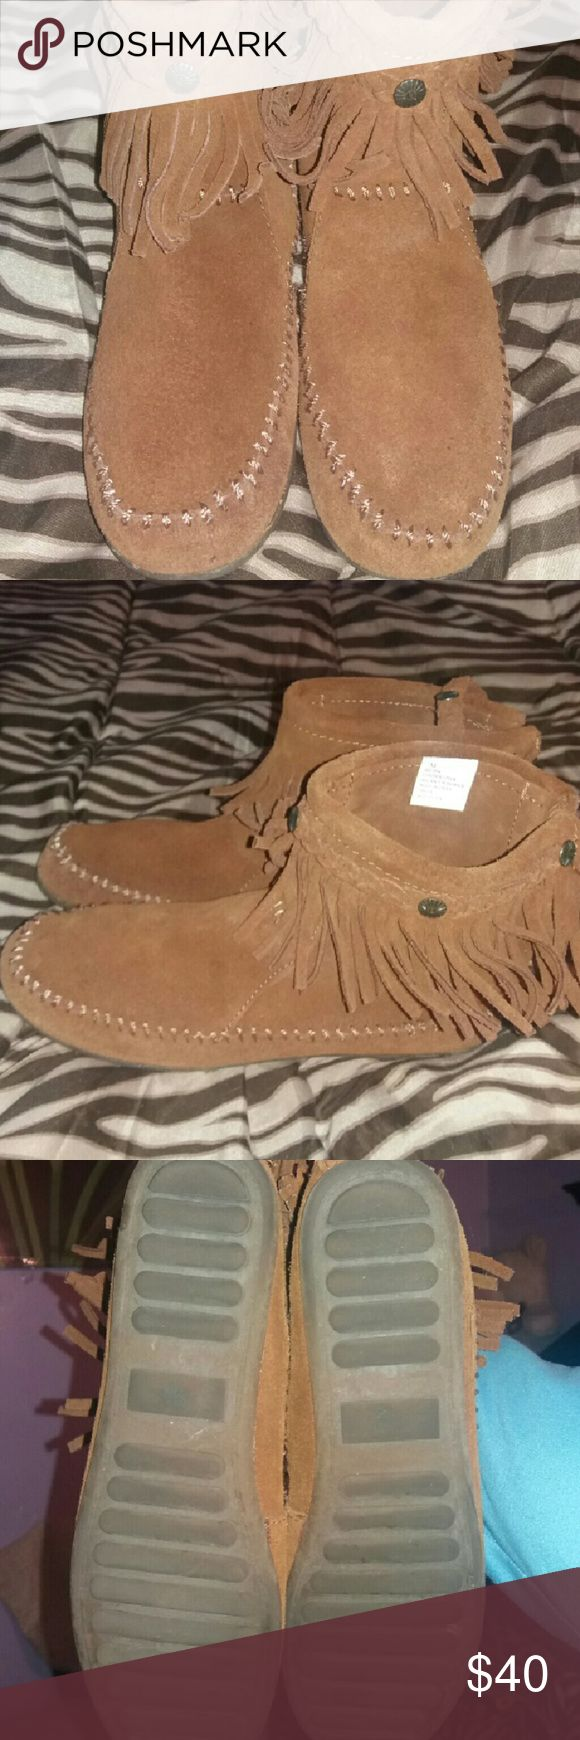 Suede mocaccins ankle booties Mocaccins mocassins  Shoes Ankle Boots & Booties